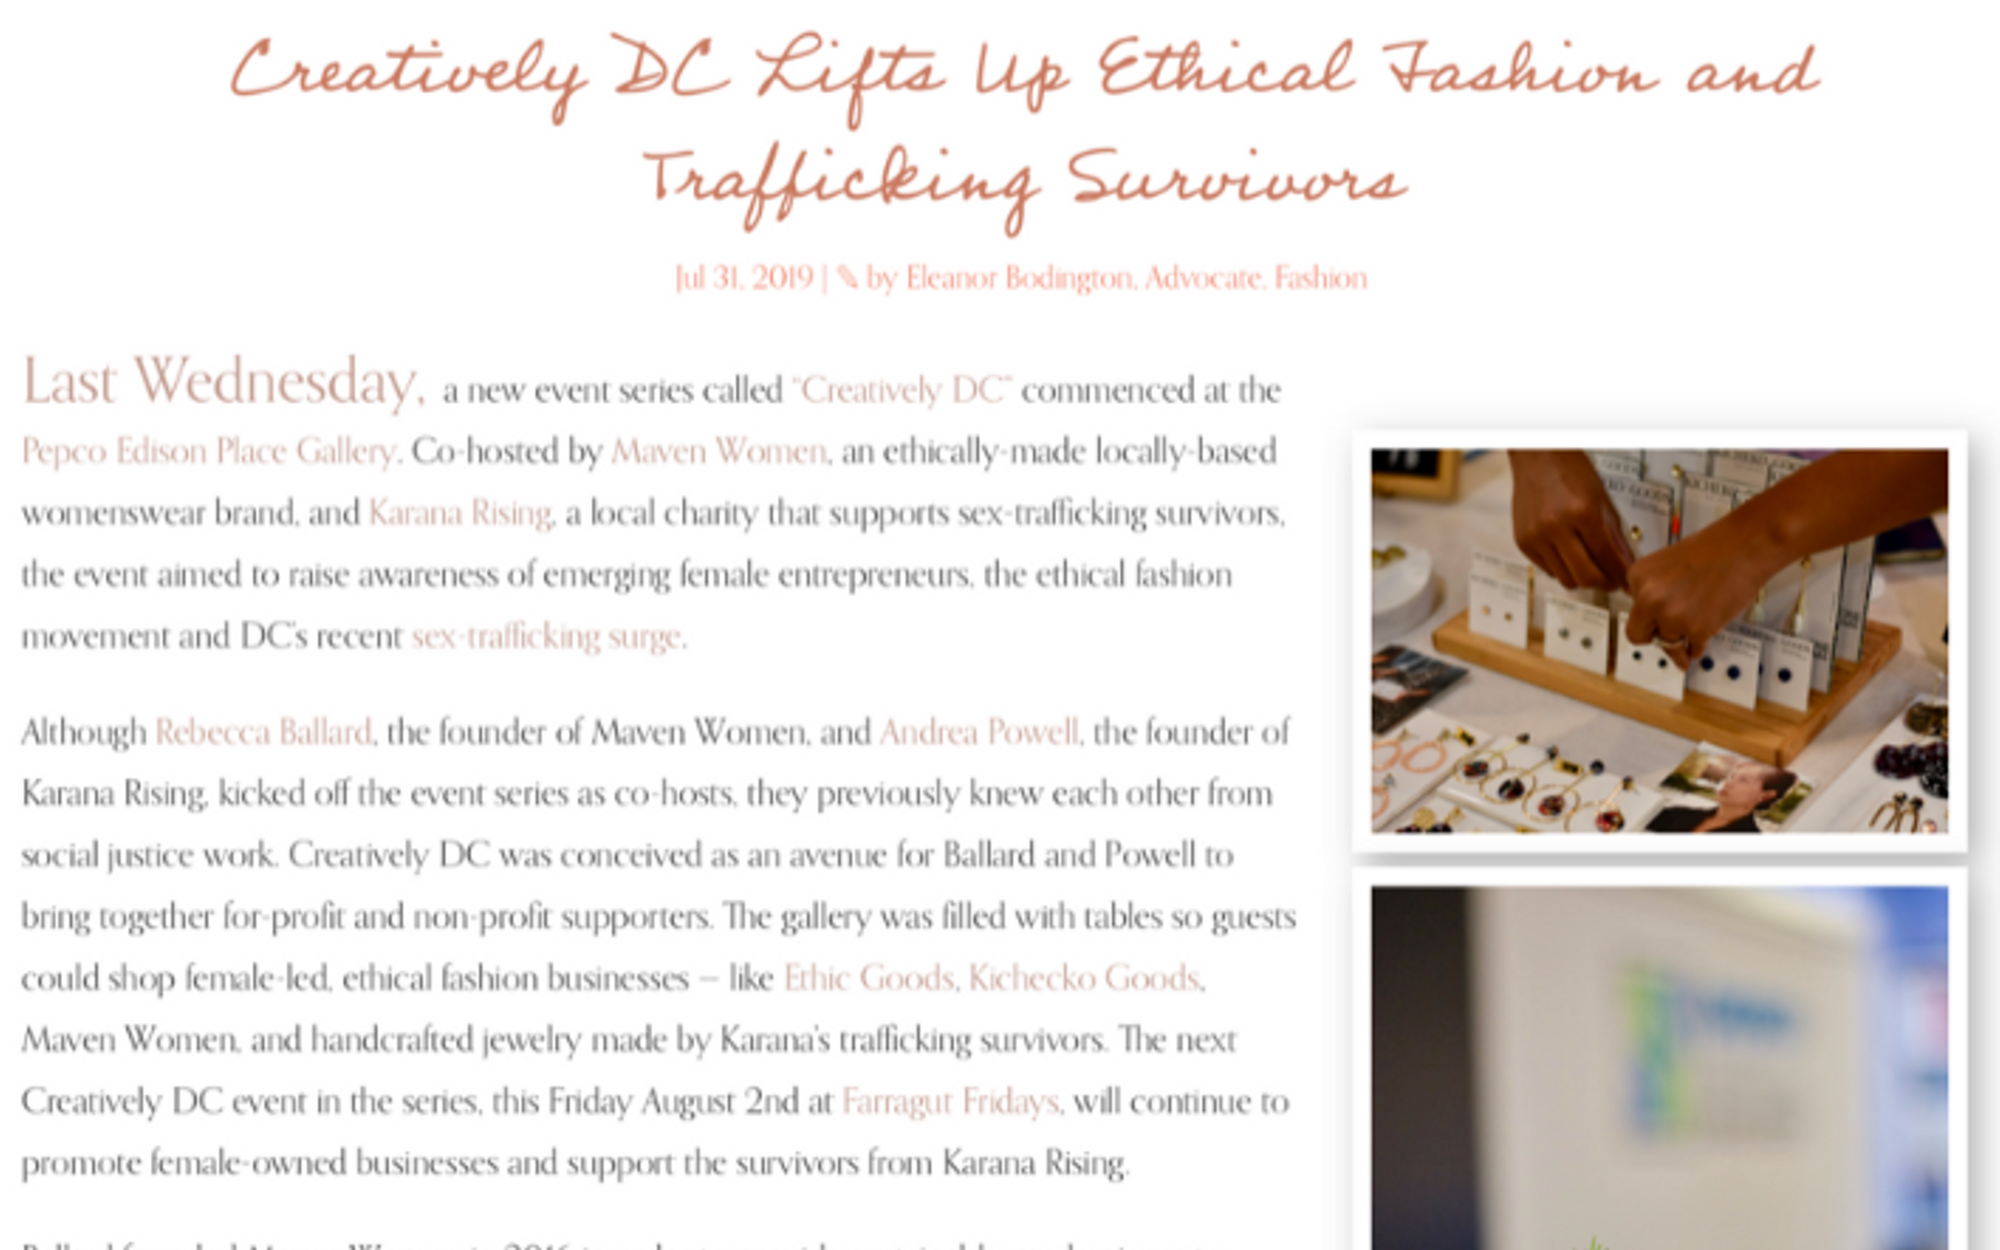 As Seen in Capitally: Creatively D.C. Lifts Up Ethical Fashion and Trafficking Surivors